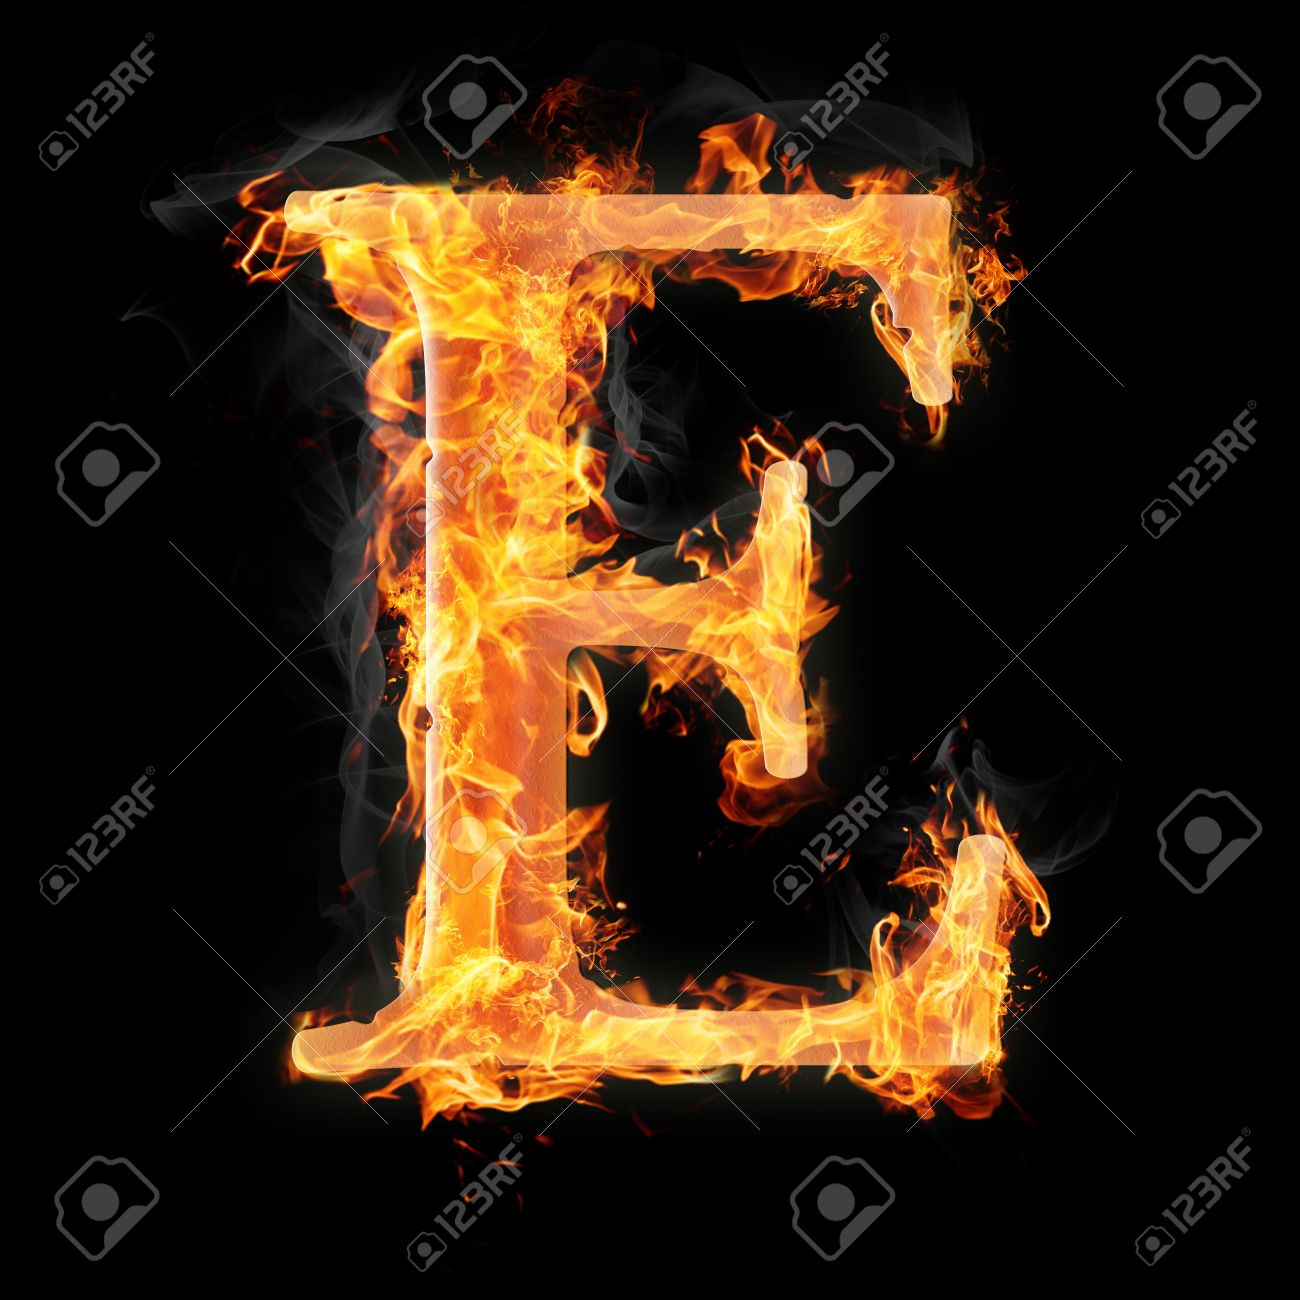 0676a18398df43 Letters And Symbols In Fire - Letter E. Stock Photo, Picture And ...